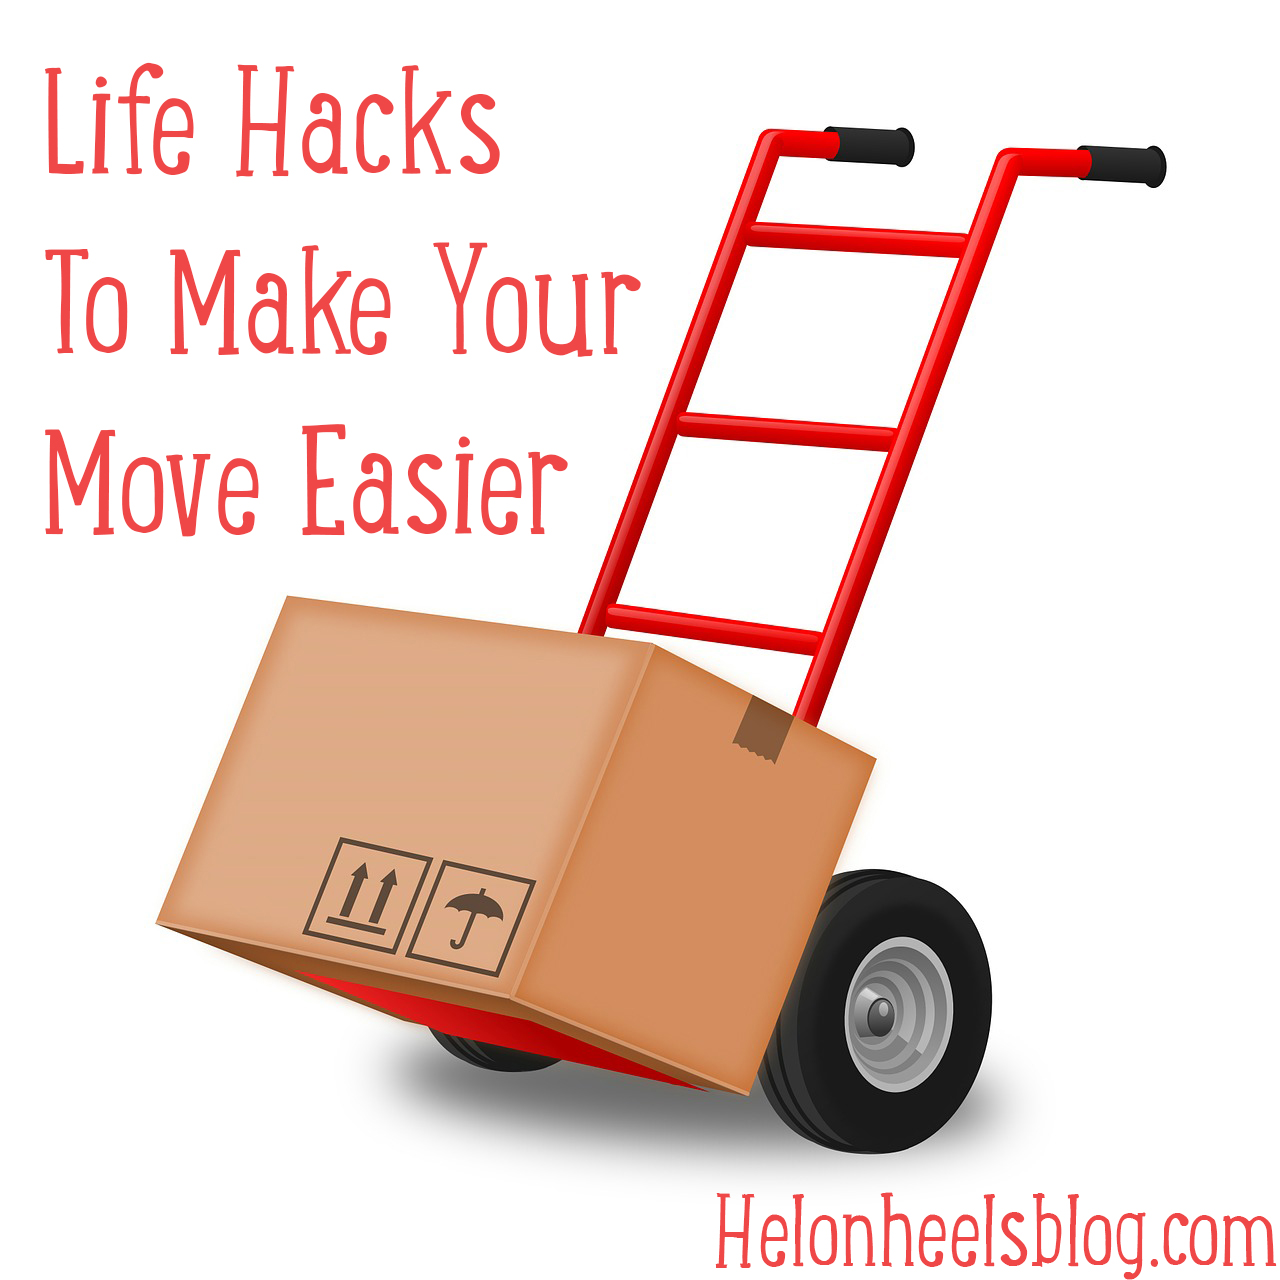 Making Moving Easier: Life Hacks To Make Your Move Easier